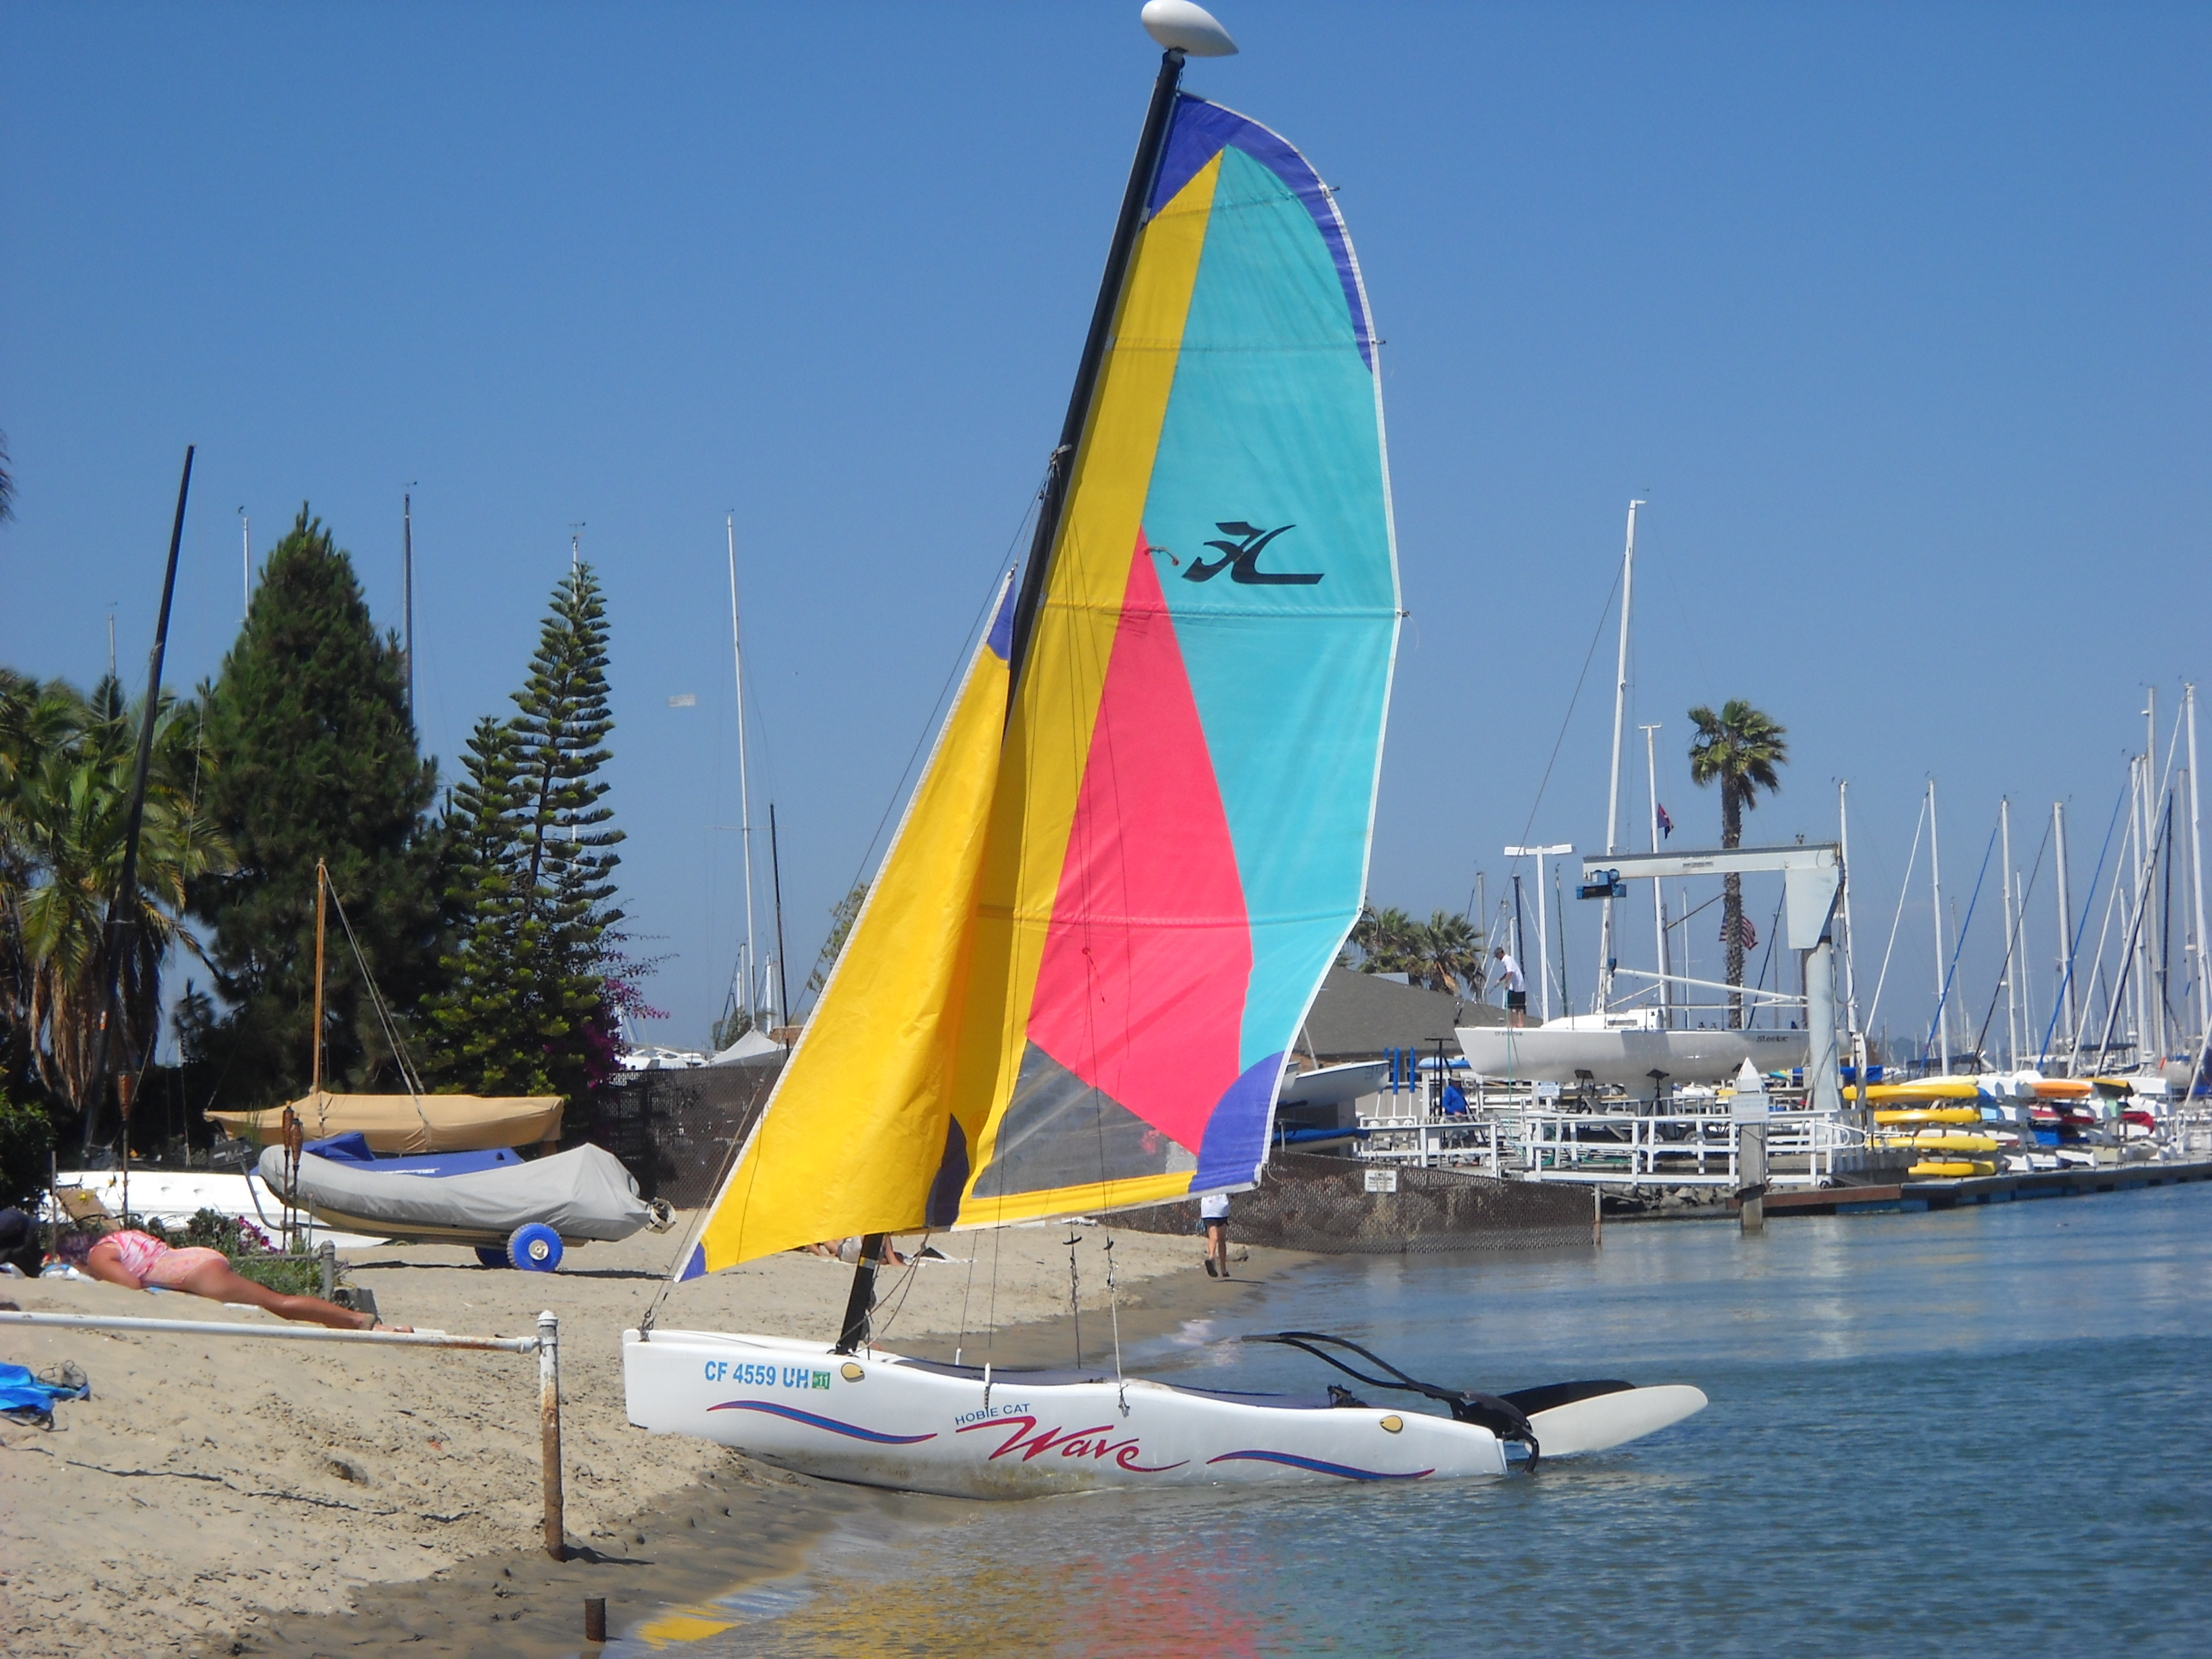 Colorful sailboats await a stiff breeze along San Diego Bay.